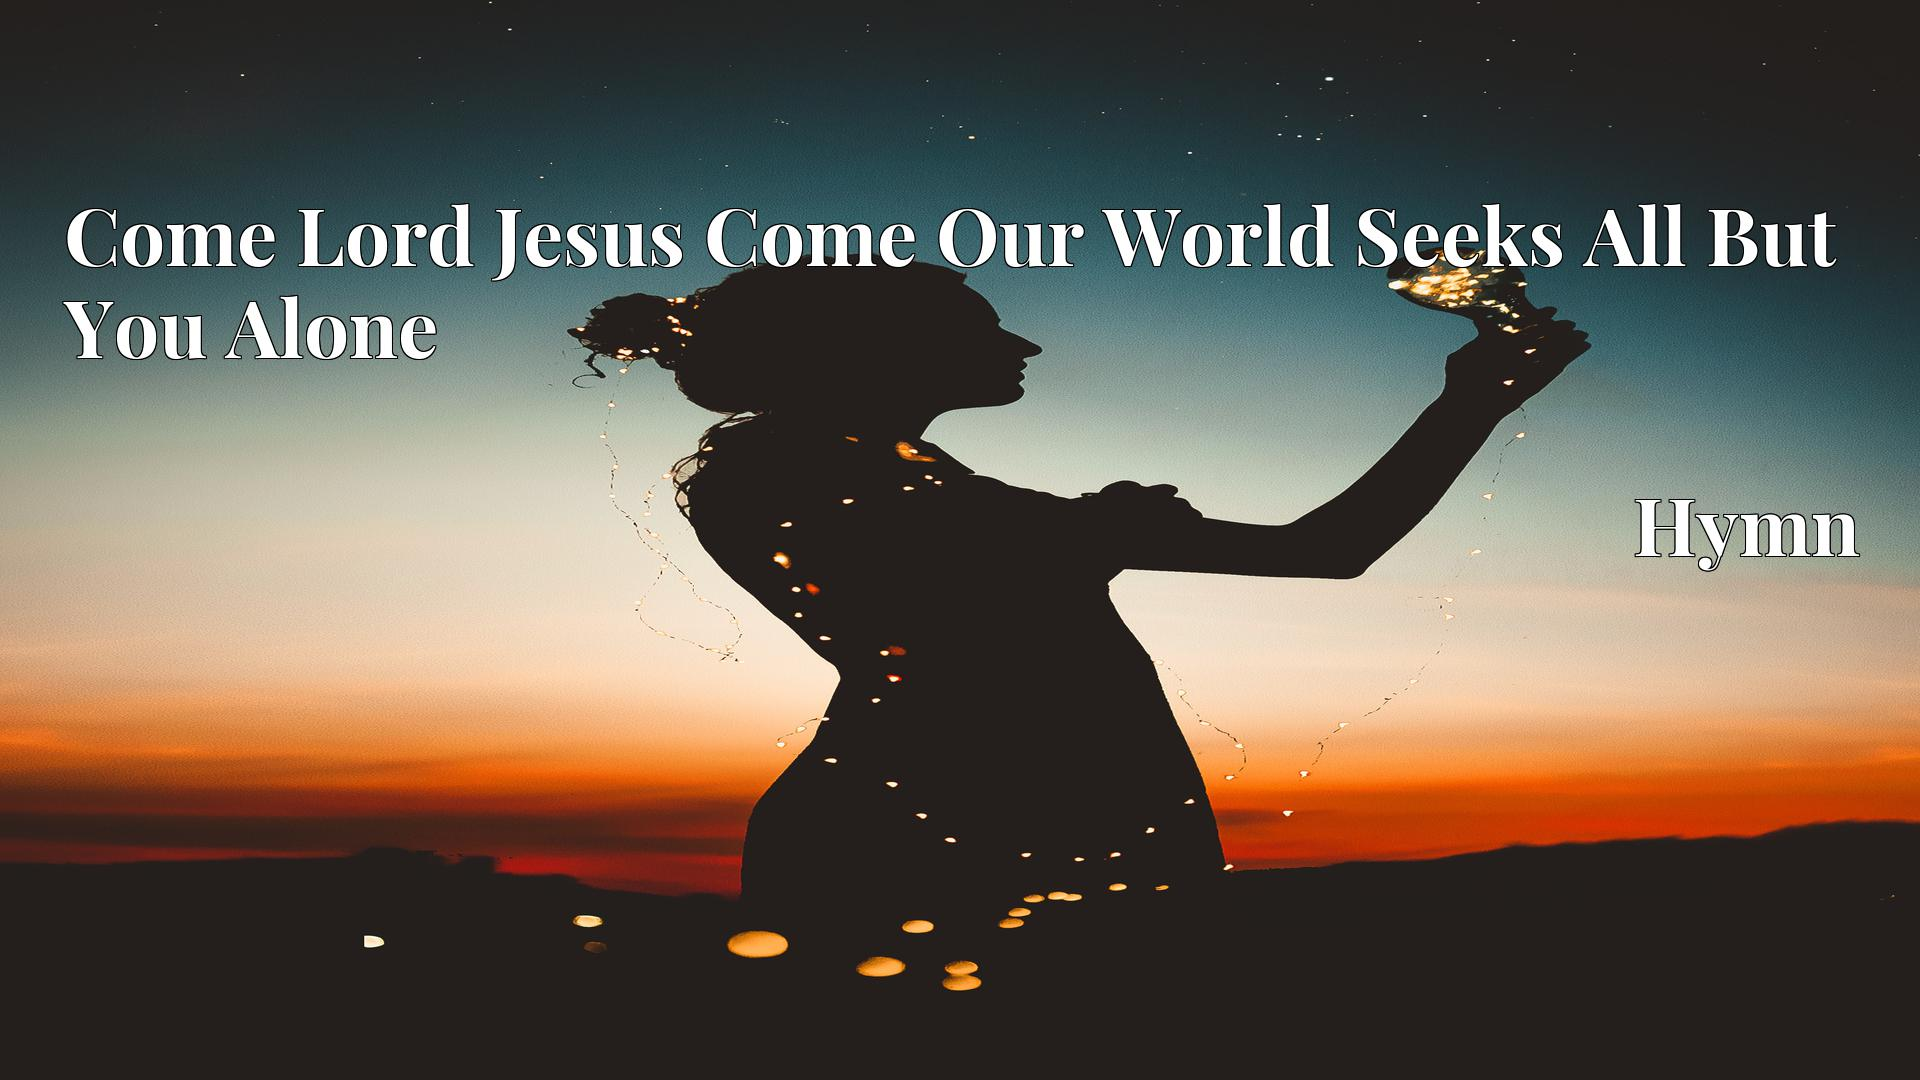 Come Lord Jesus Come Our World Seeks All But You Alone Hymn Lyric